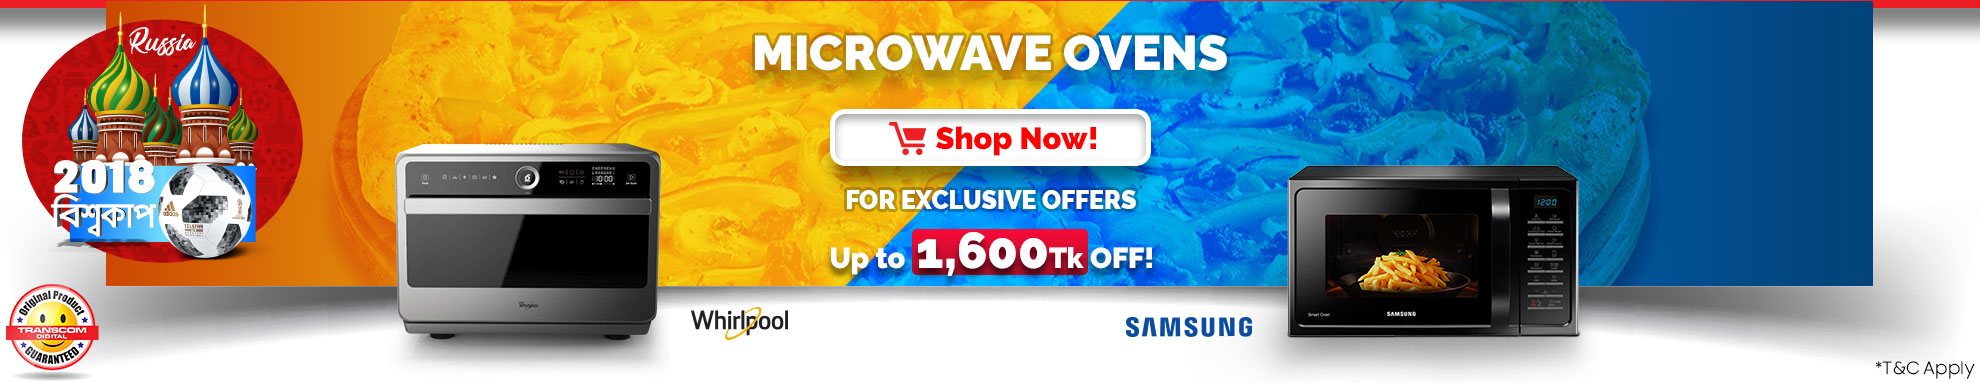 Microwave oven price, transcom digital bd